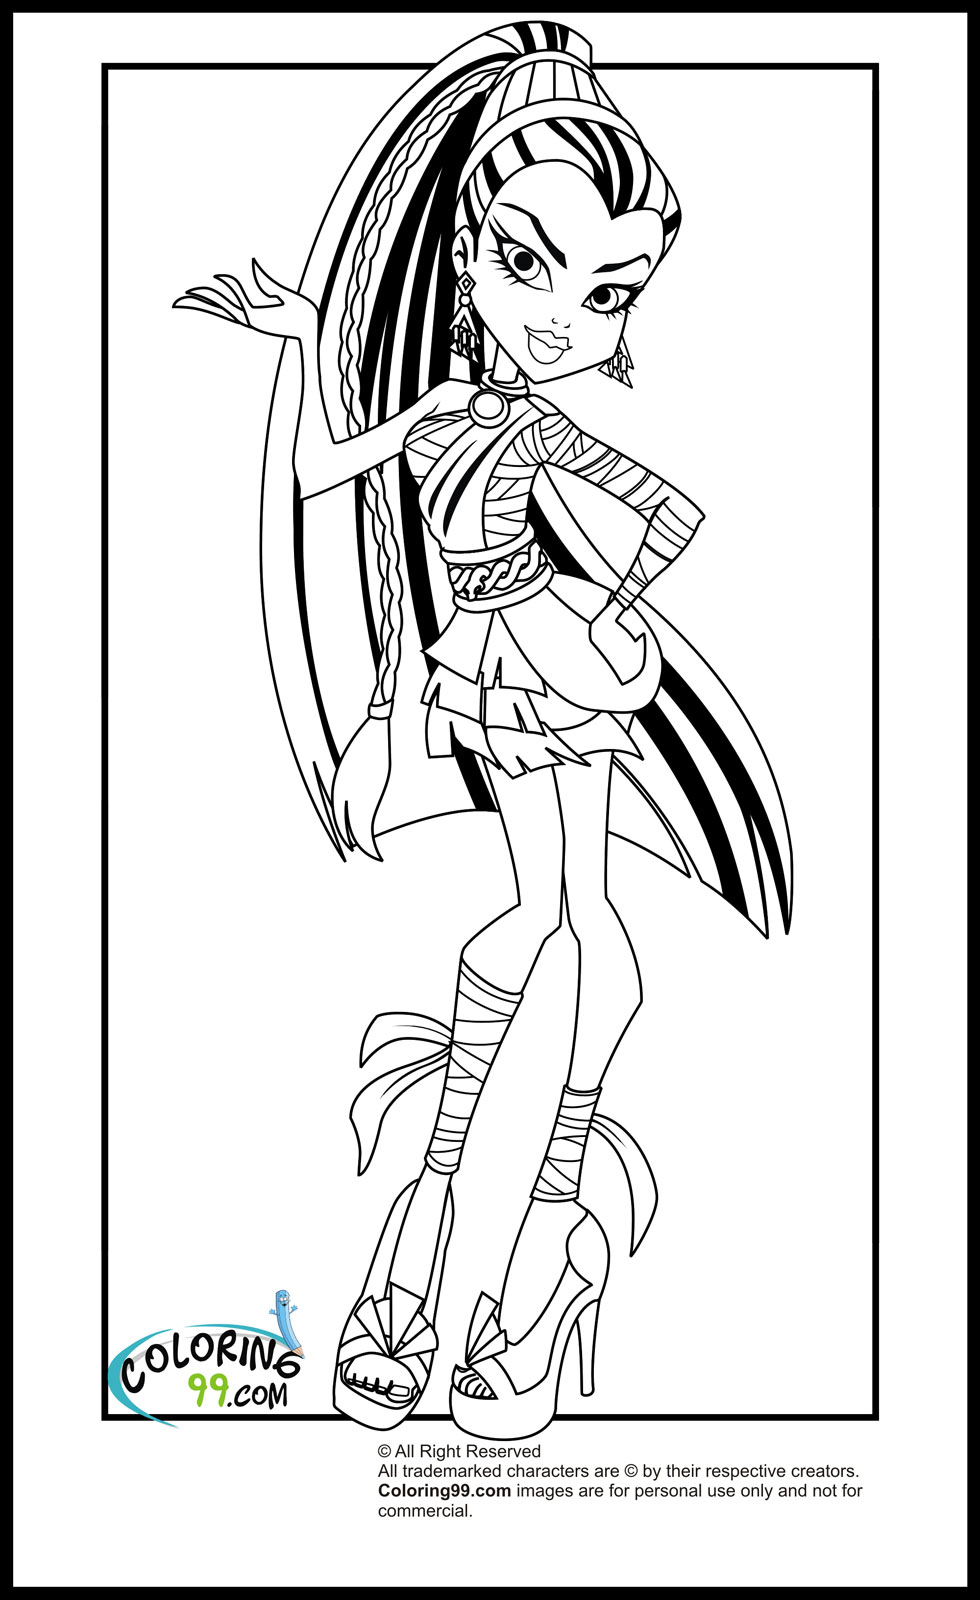 coloring book monster high monster high clawdeen wolf coloring pages minister coloring book monster coloring high